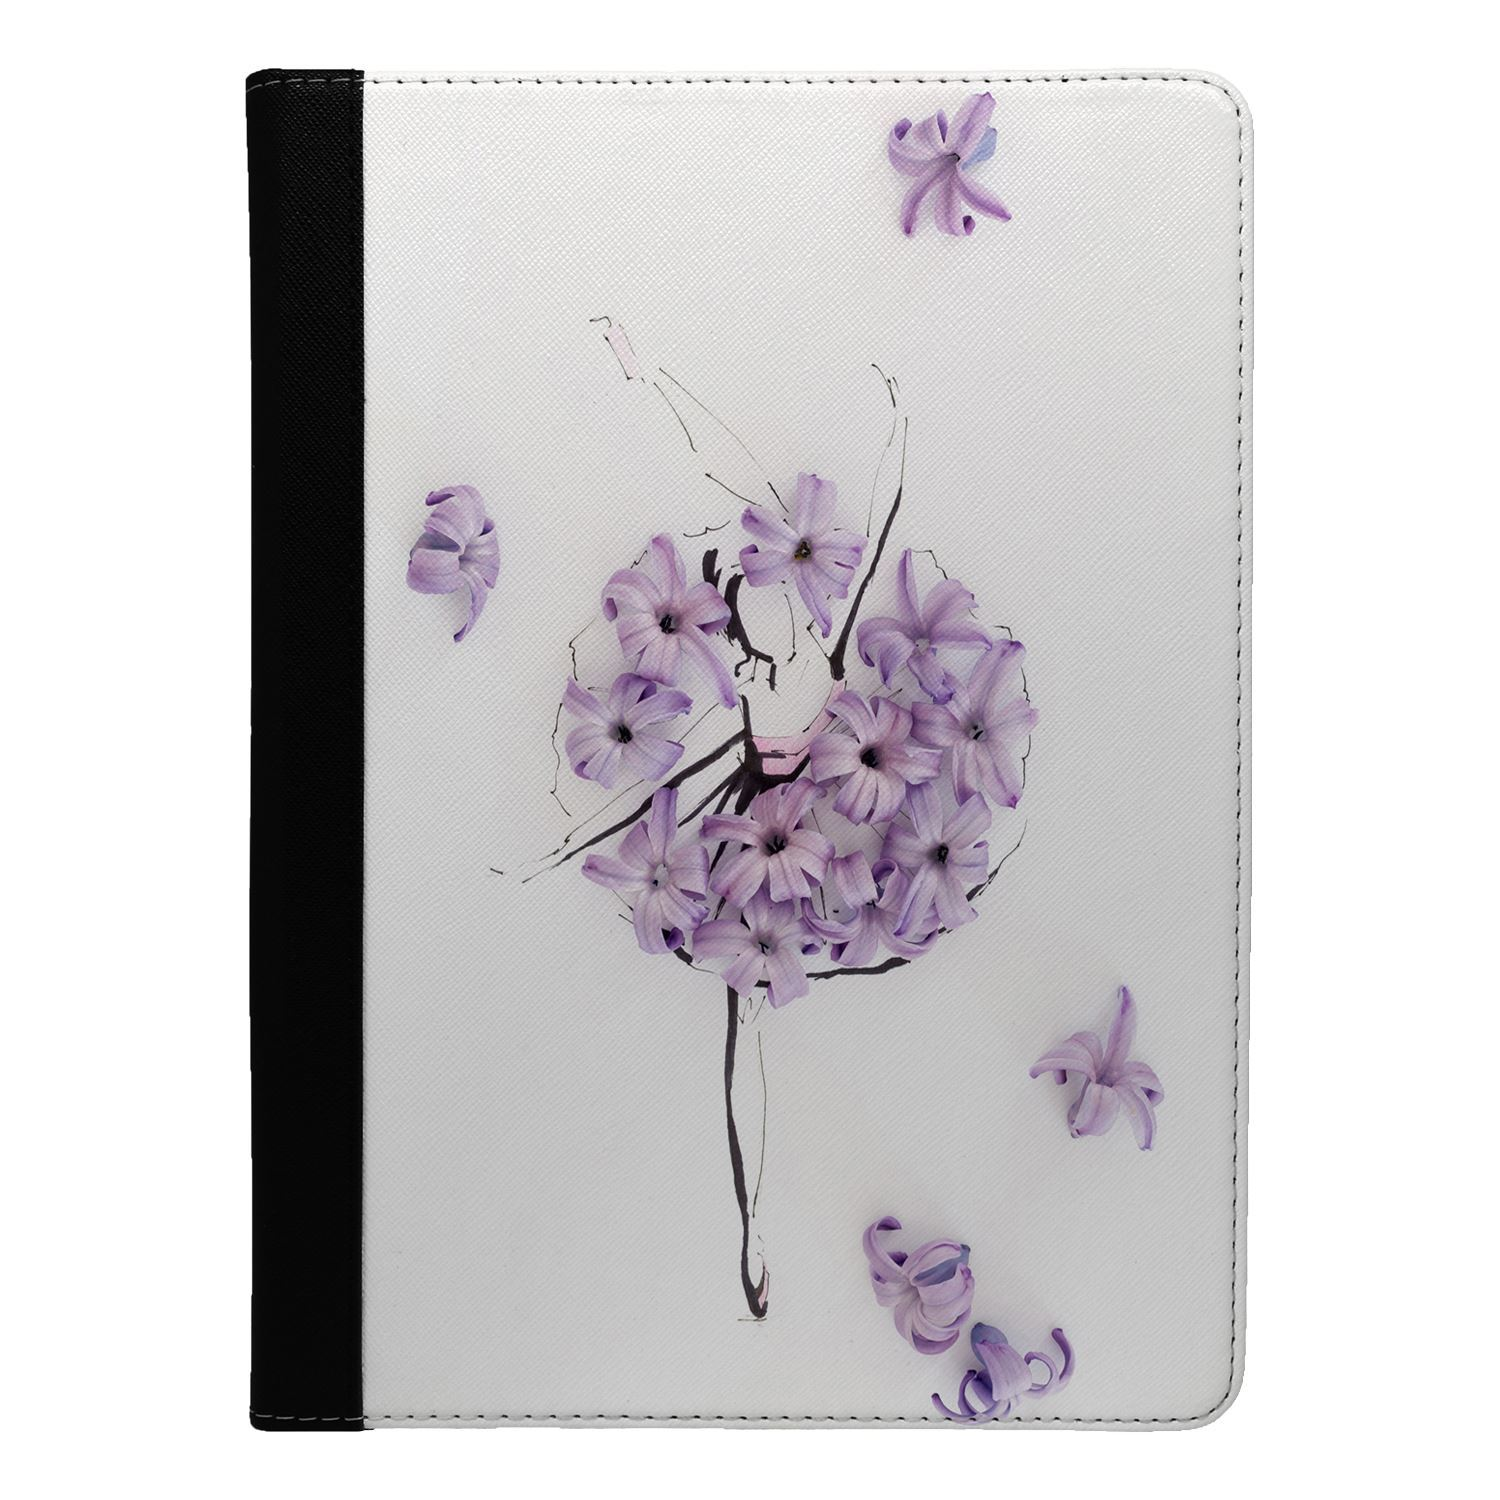 Dance-Music-Ballerina-Flowers-Flip-Case-Cover-For-Apple-iPad-S911